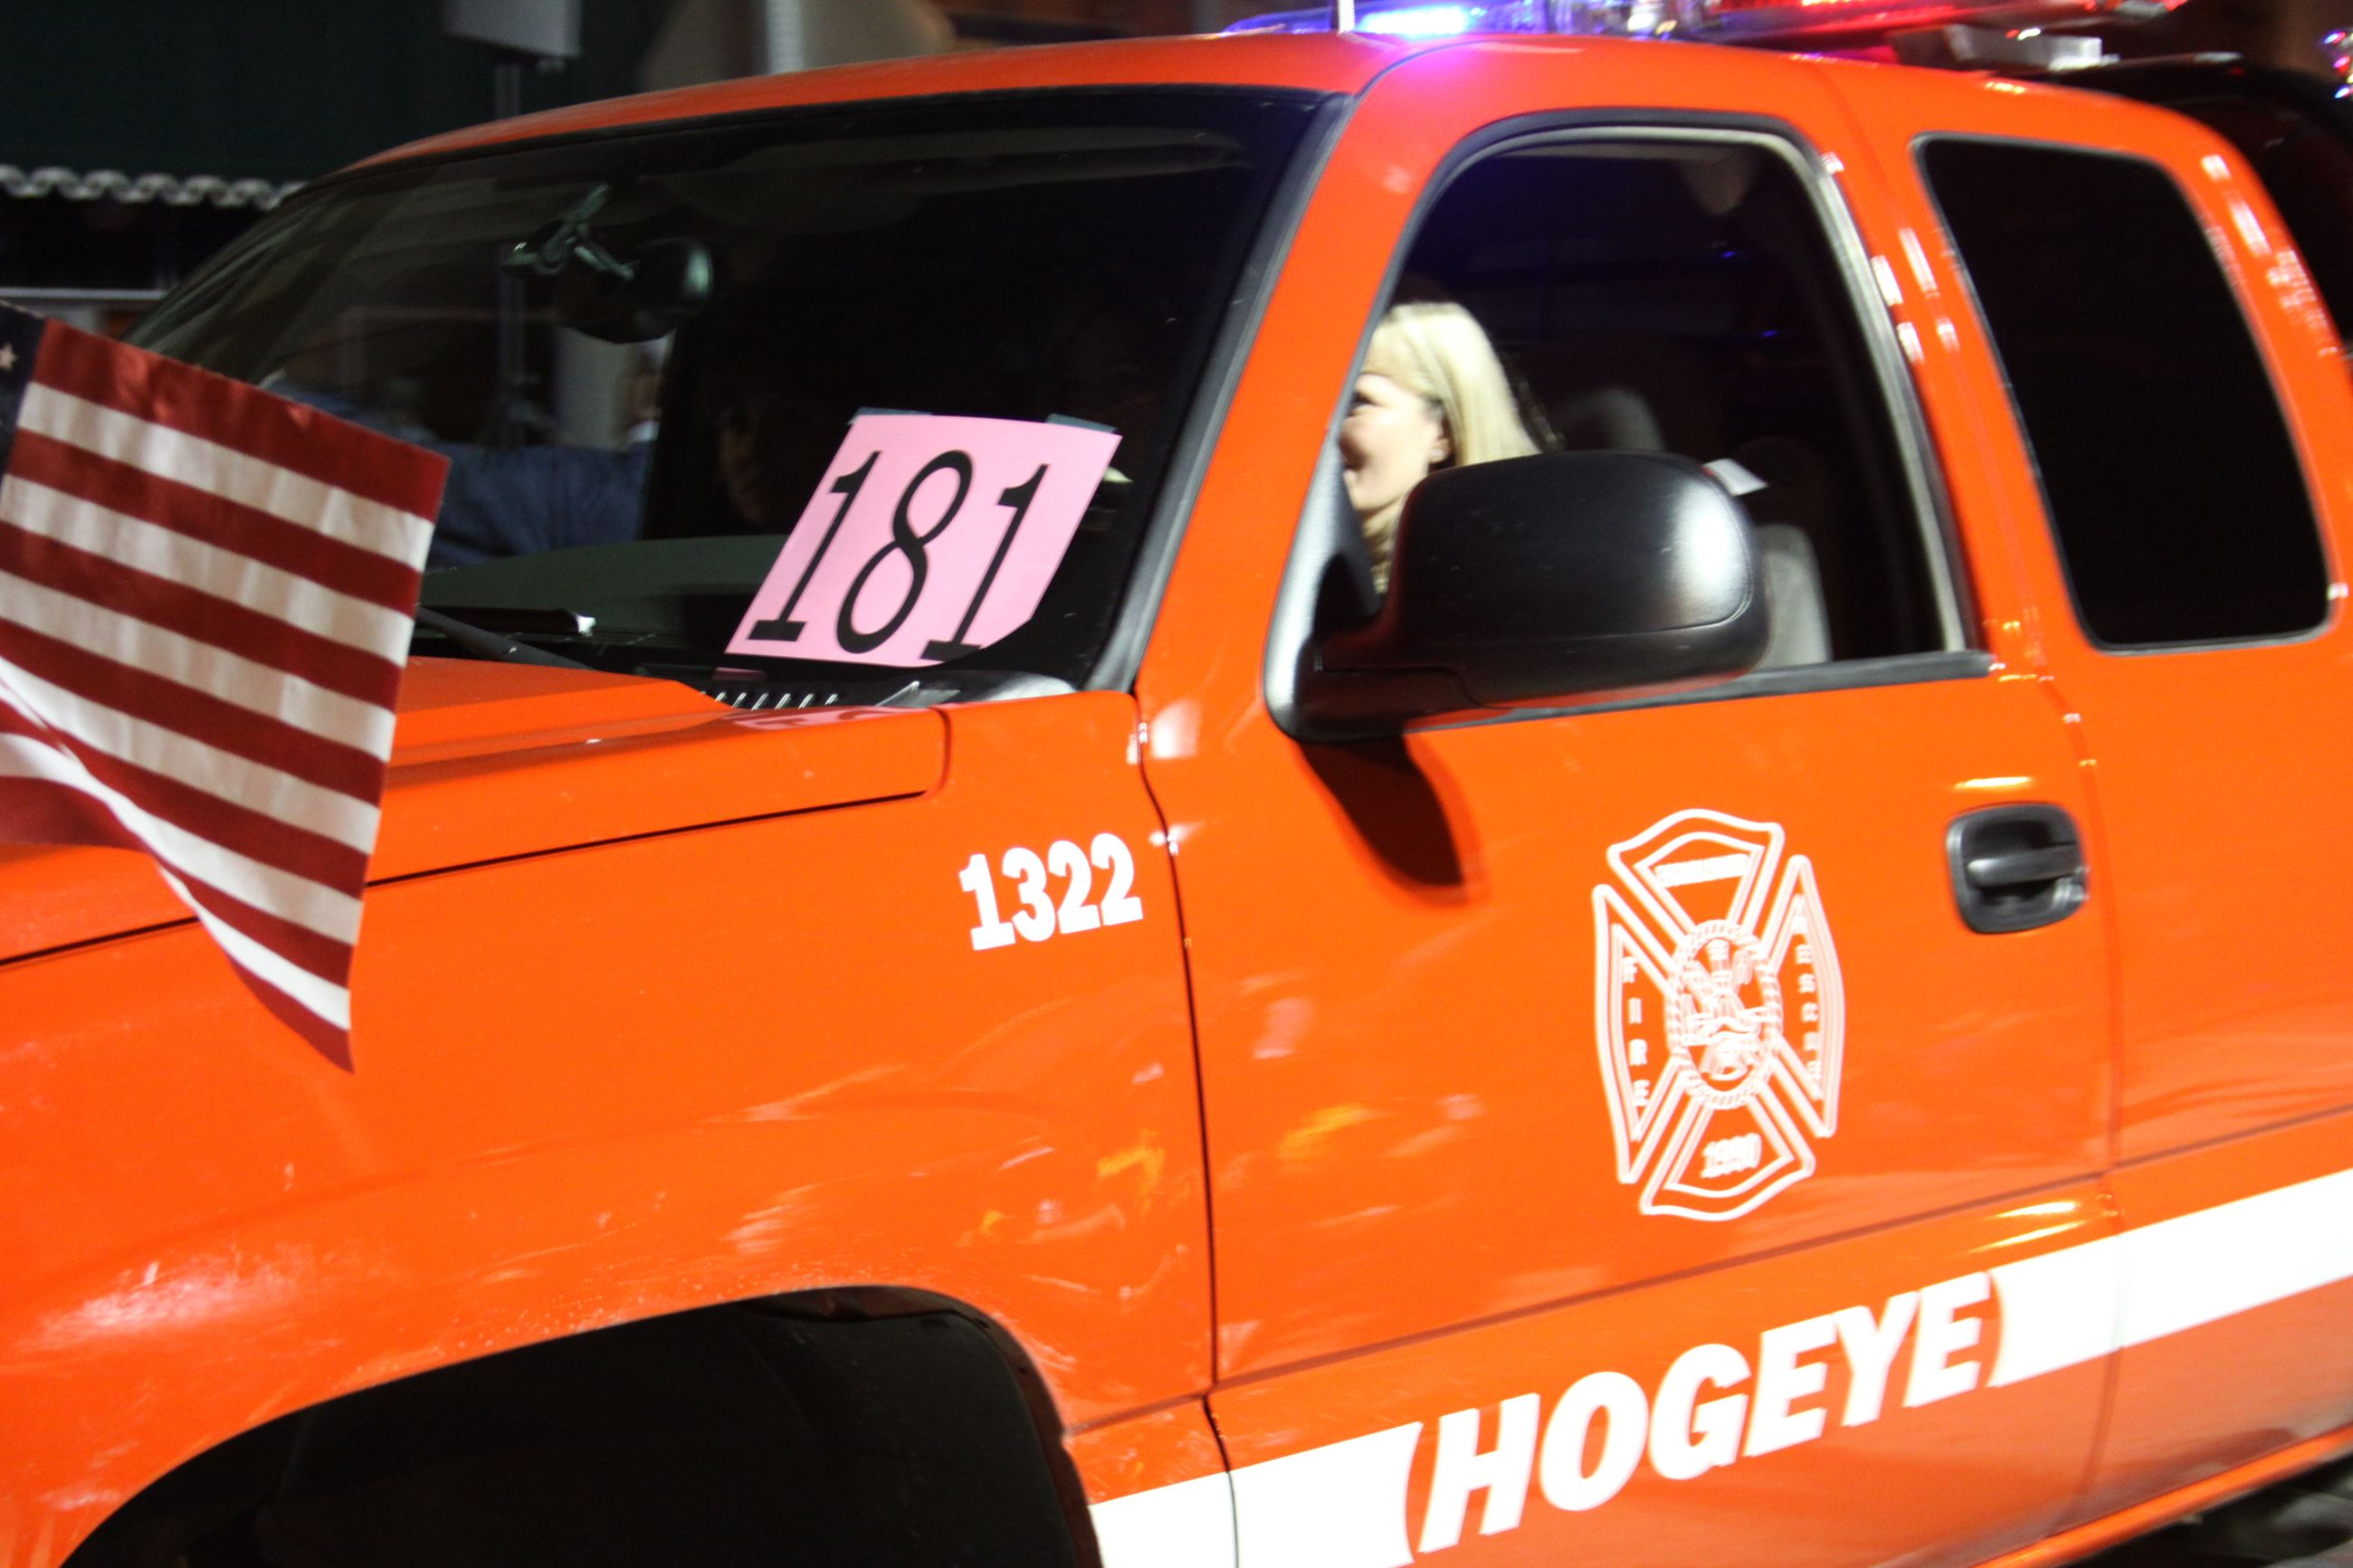 181 - Hogeye Fire Department